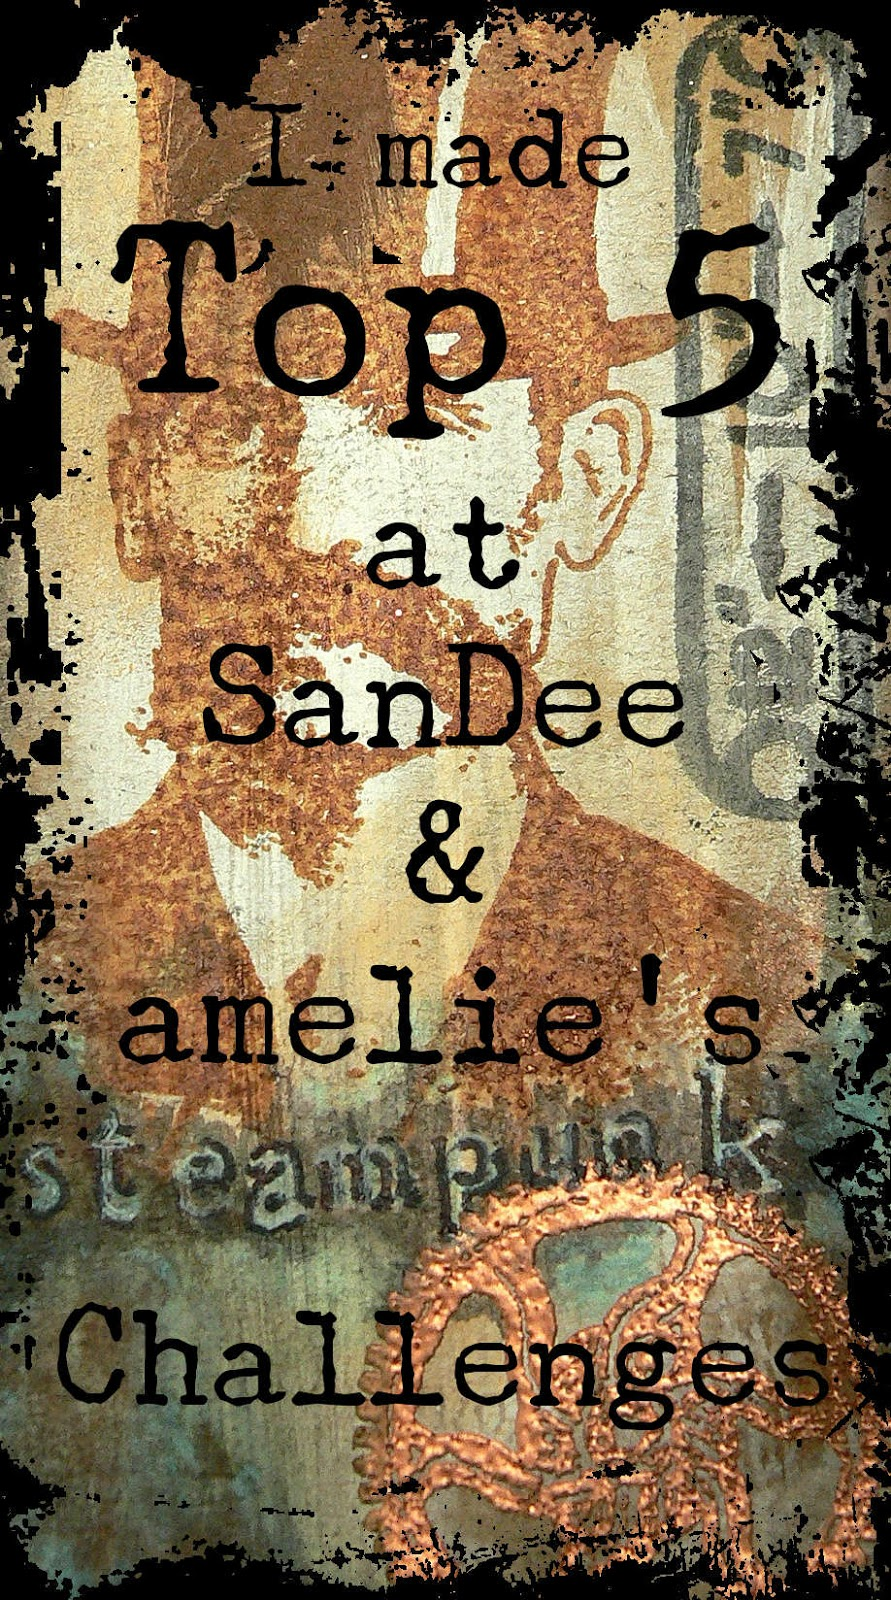 Top 5 at SanDee&amelie's Steampunk Challenges Blog